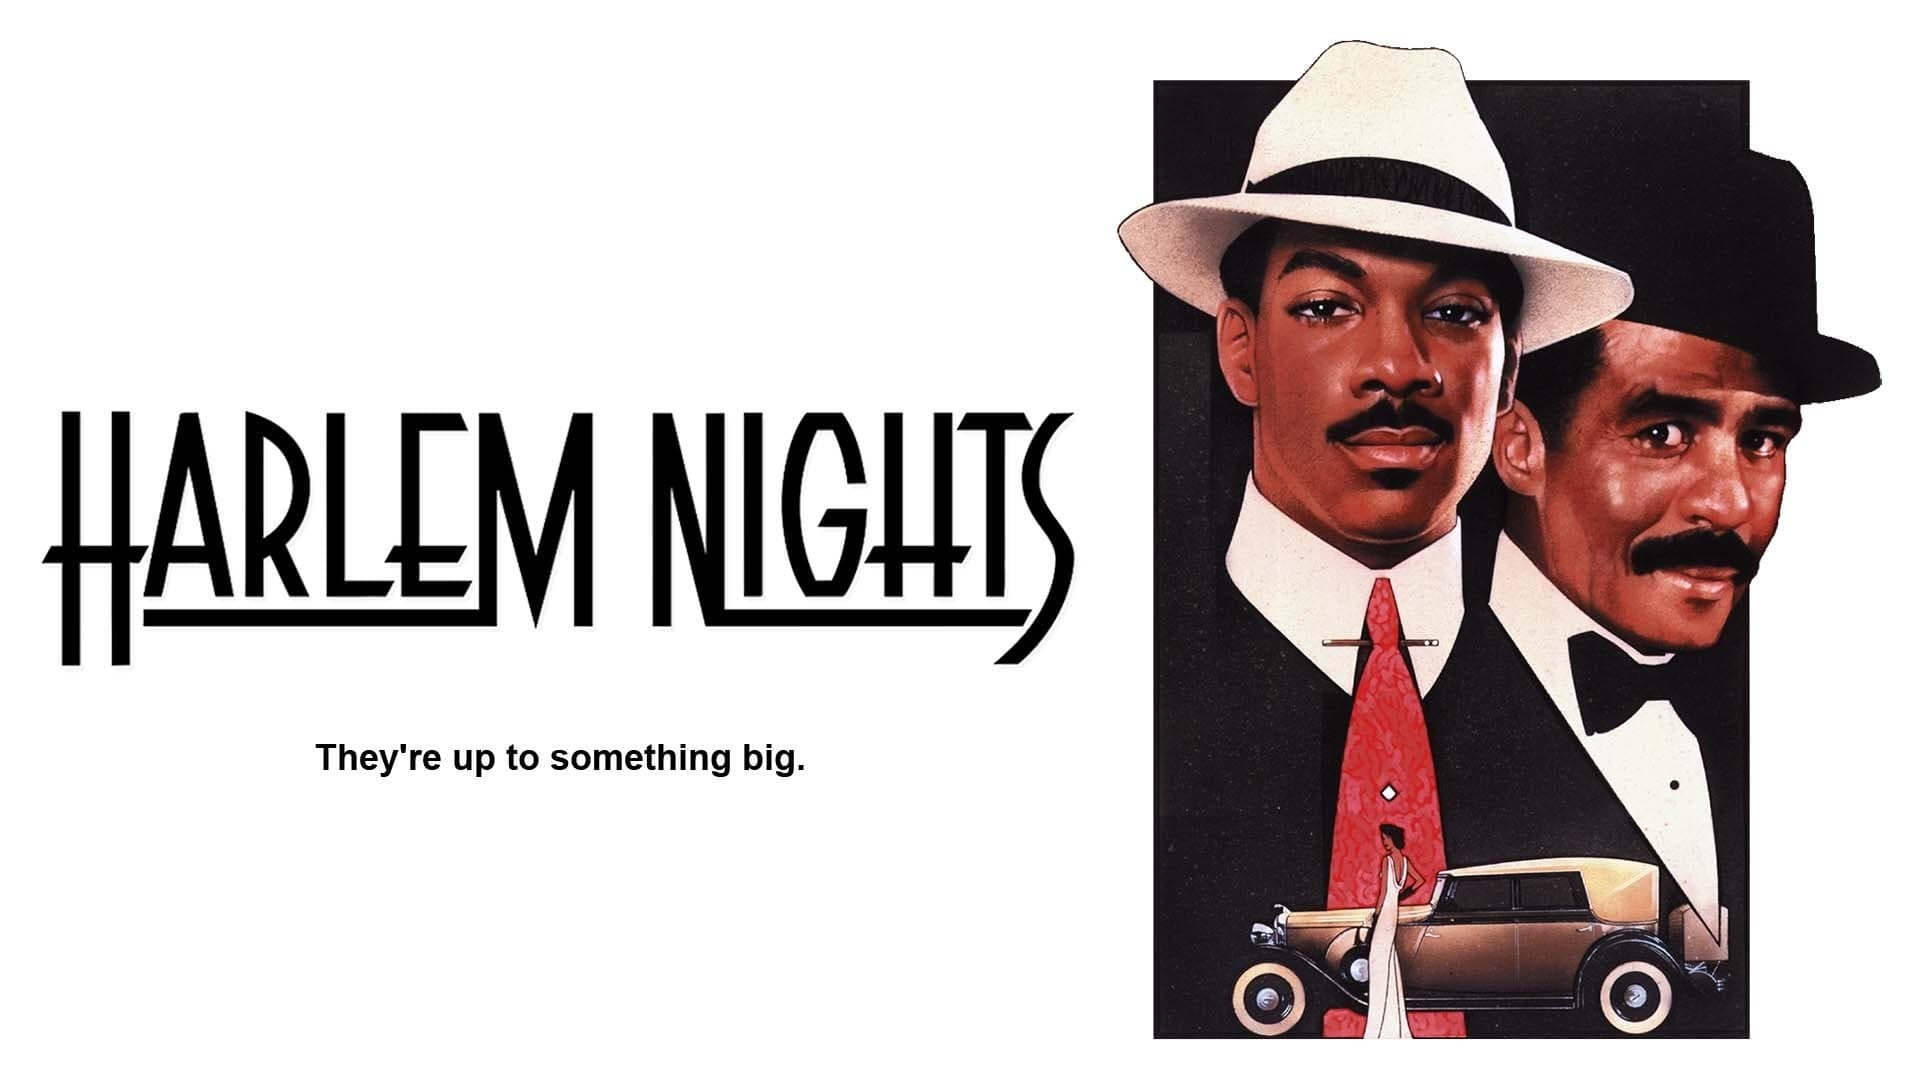 Games for Girls Pictures of harlem nights